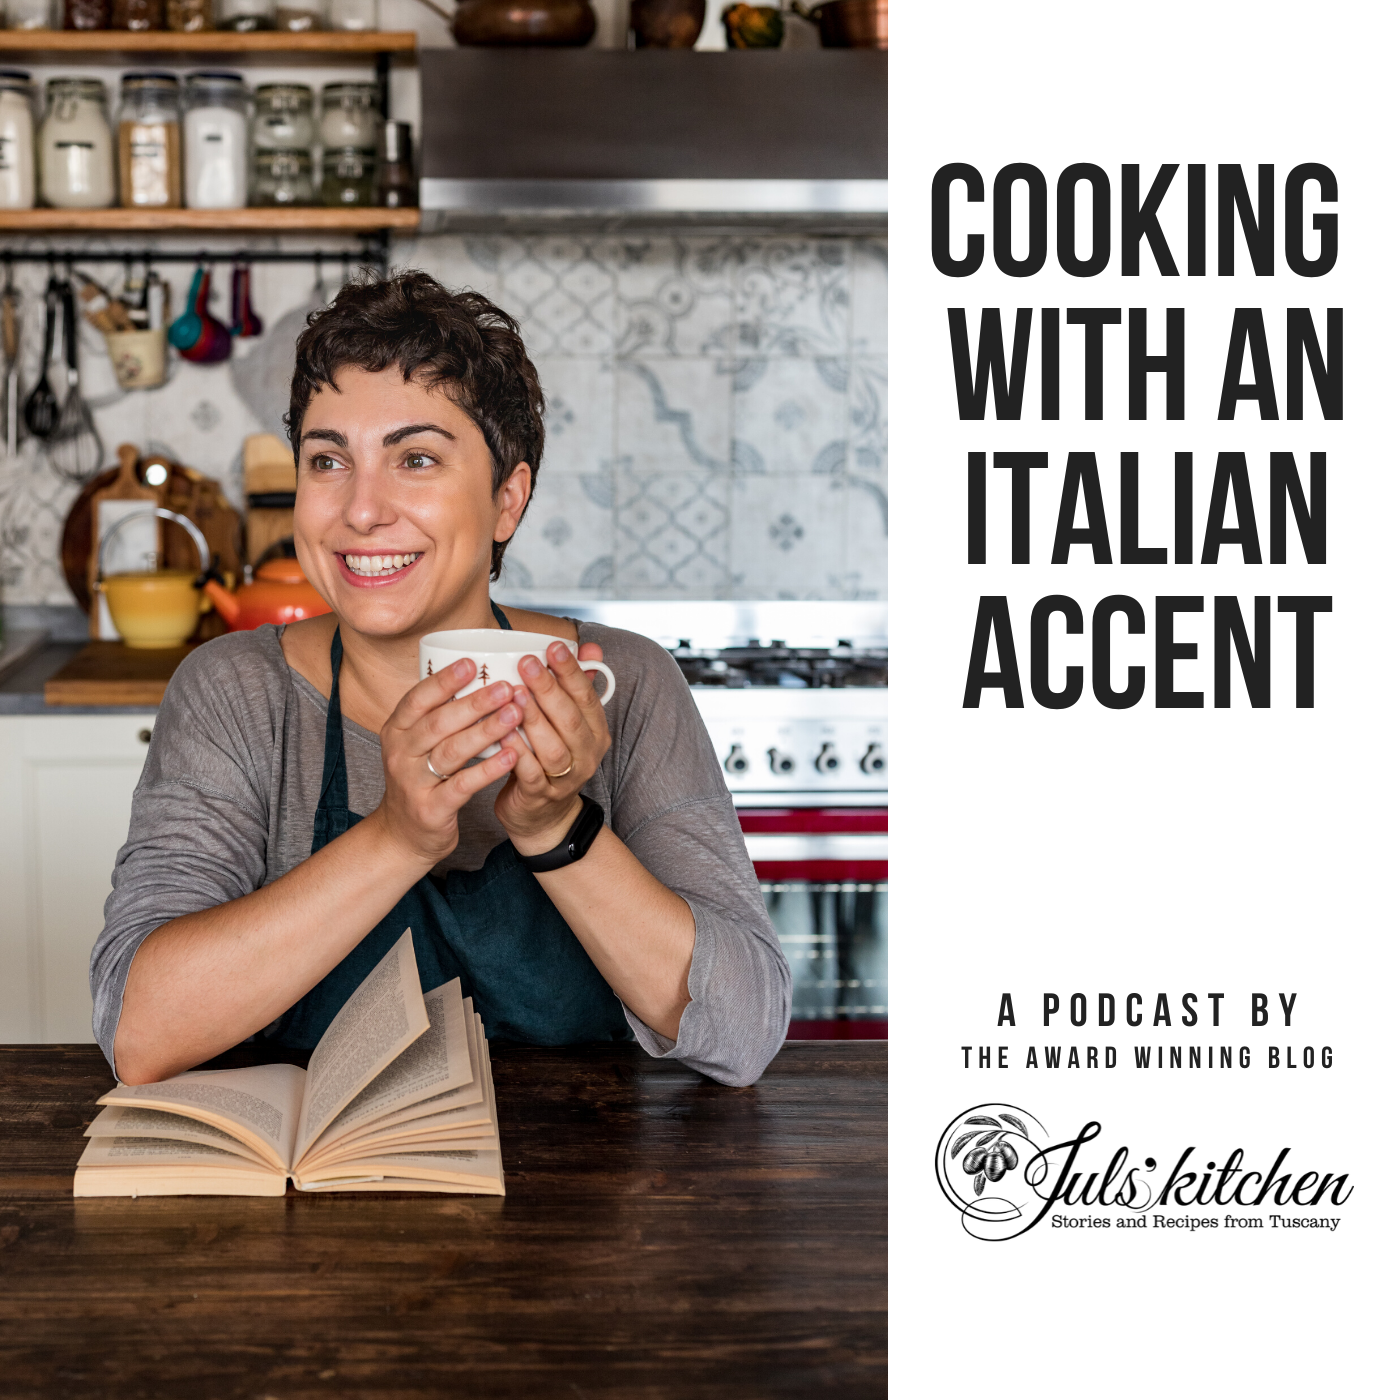 EP3 - Tuscan bread, the staple of Tuscan cooking - Cooking with an Italian accent